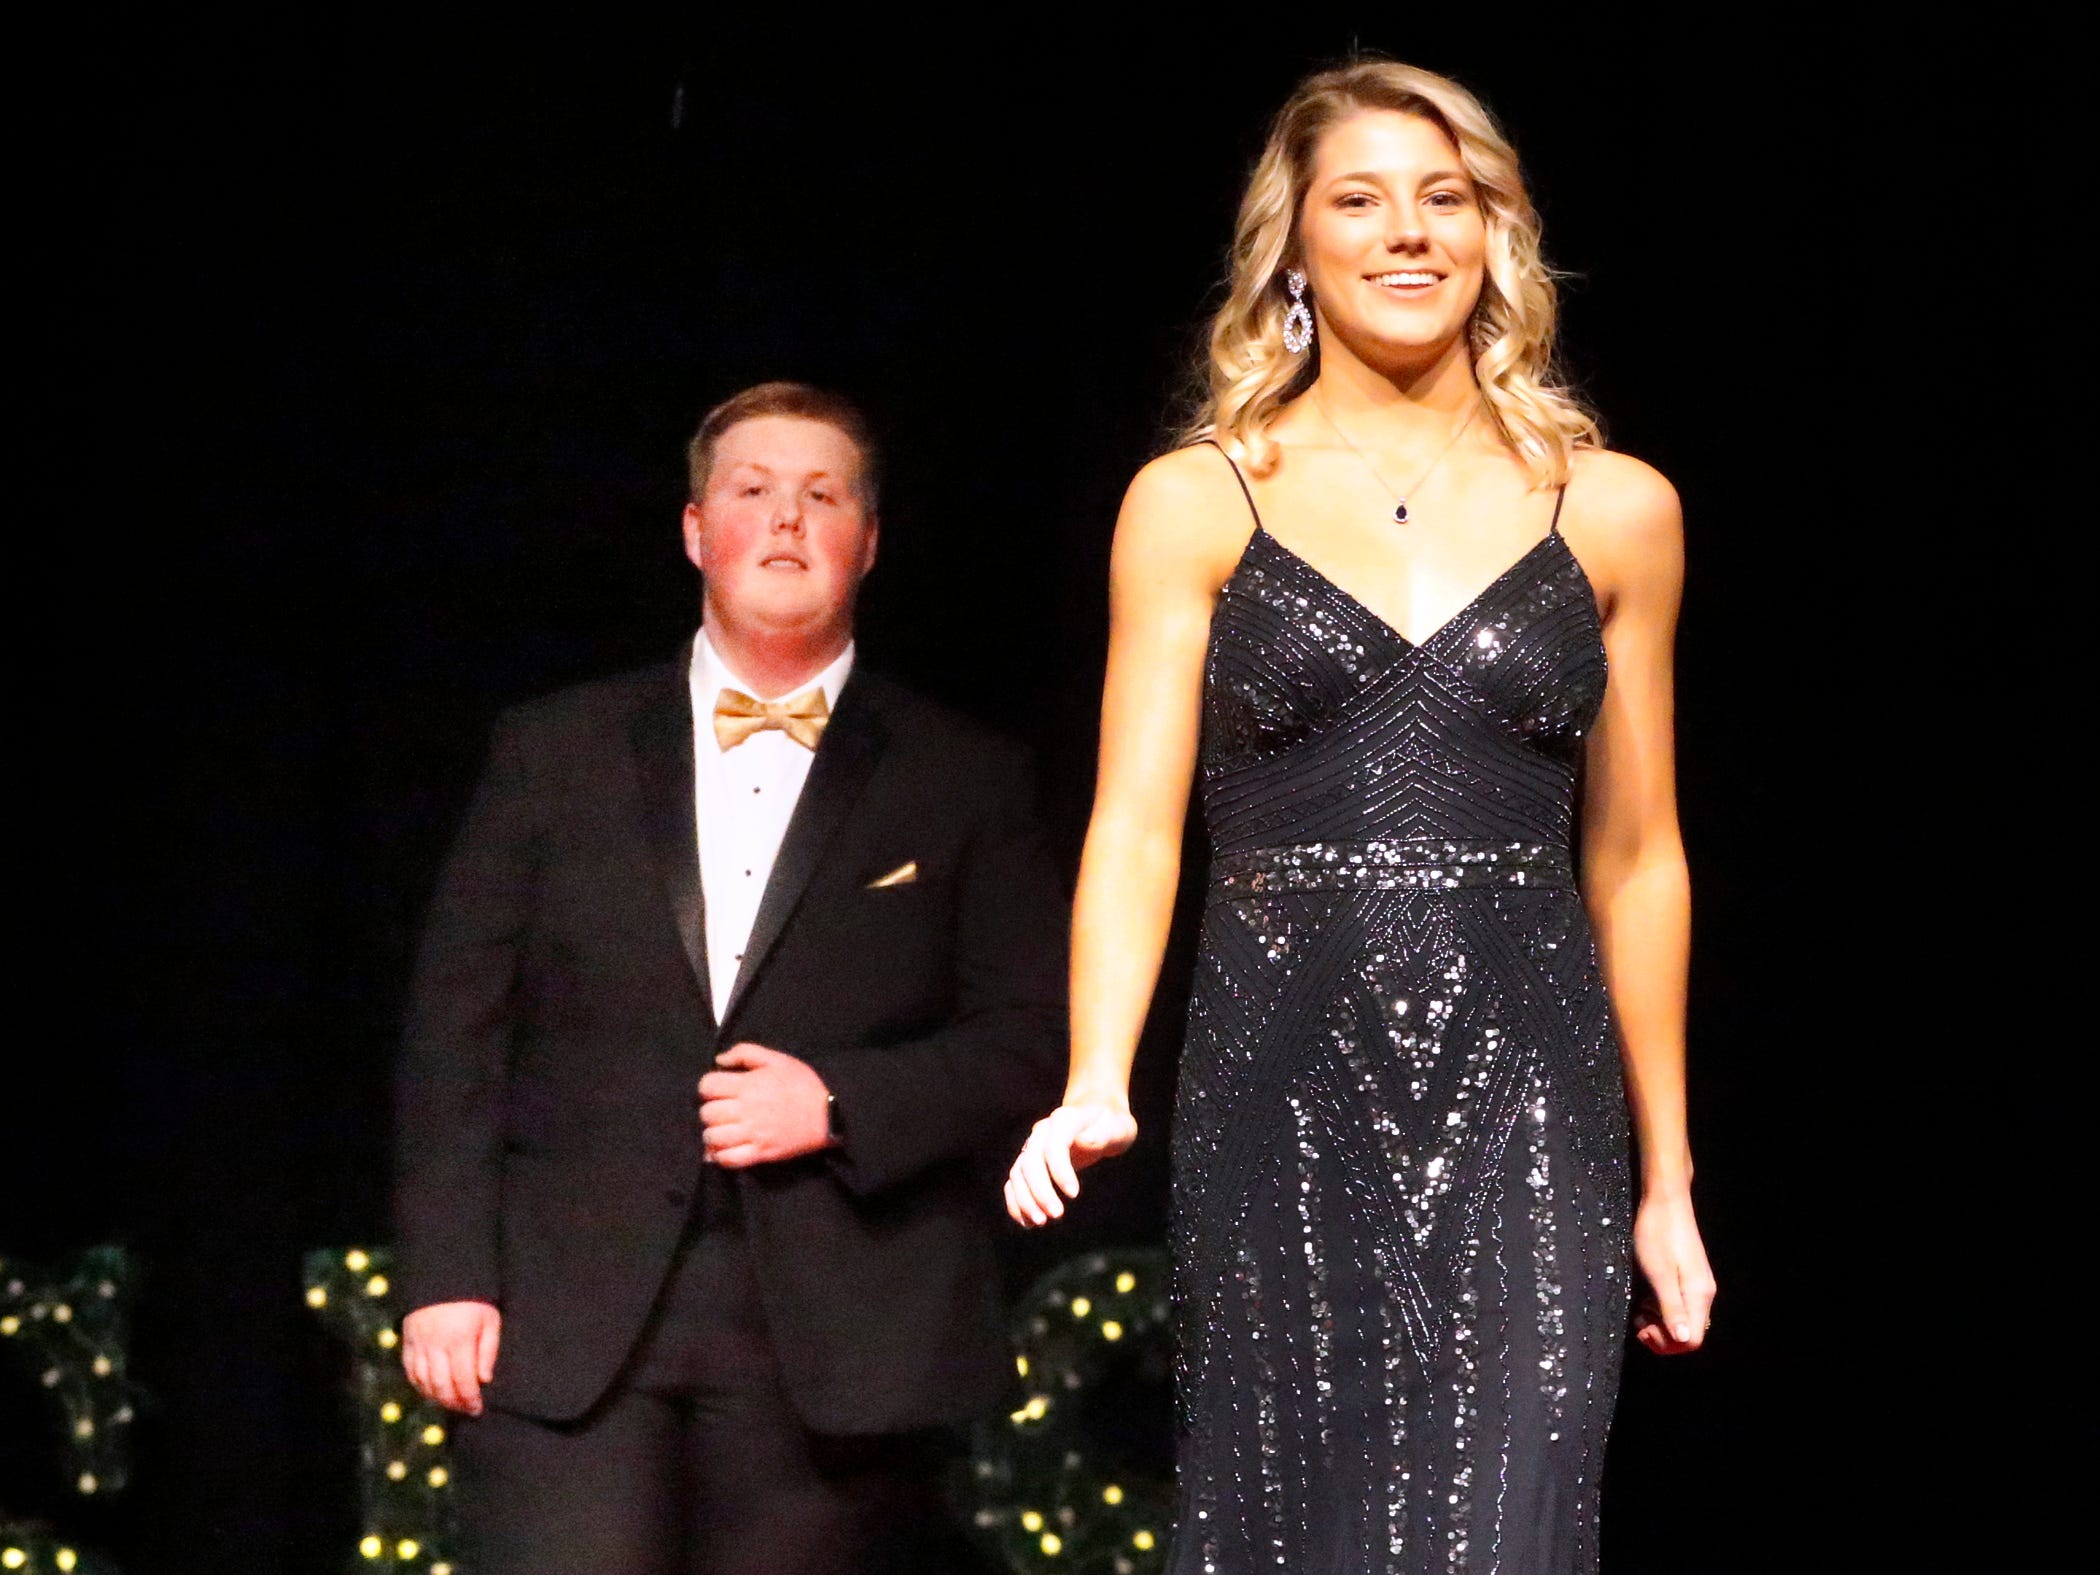 Presley Leebrick steps forward to show off her dress as Hunter Paschall waits to show off his tux during the Siegel Prom Fashion show on Thursday, Feb. 14, 2019.